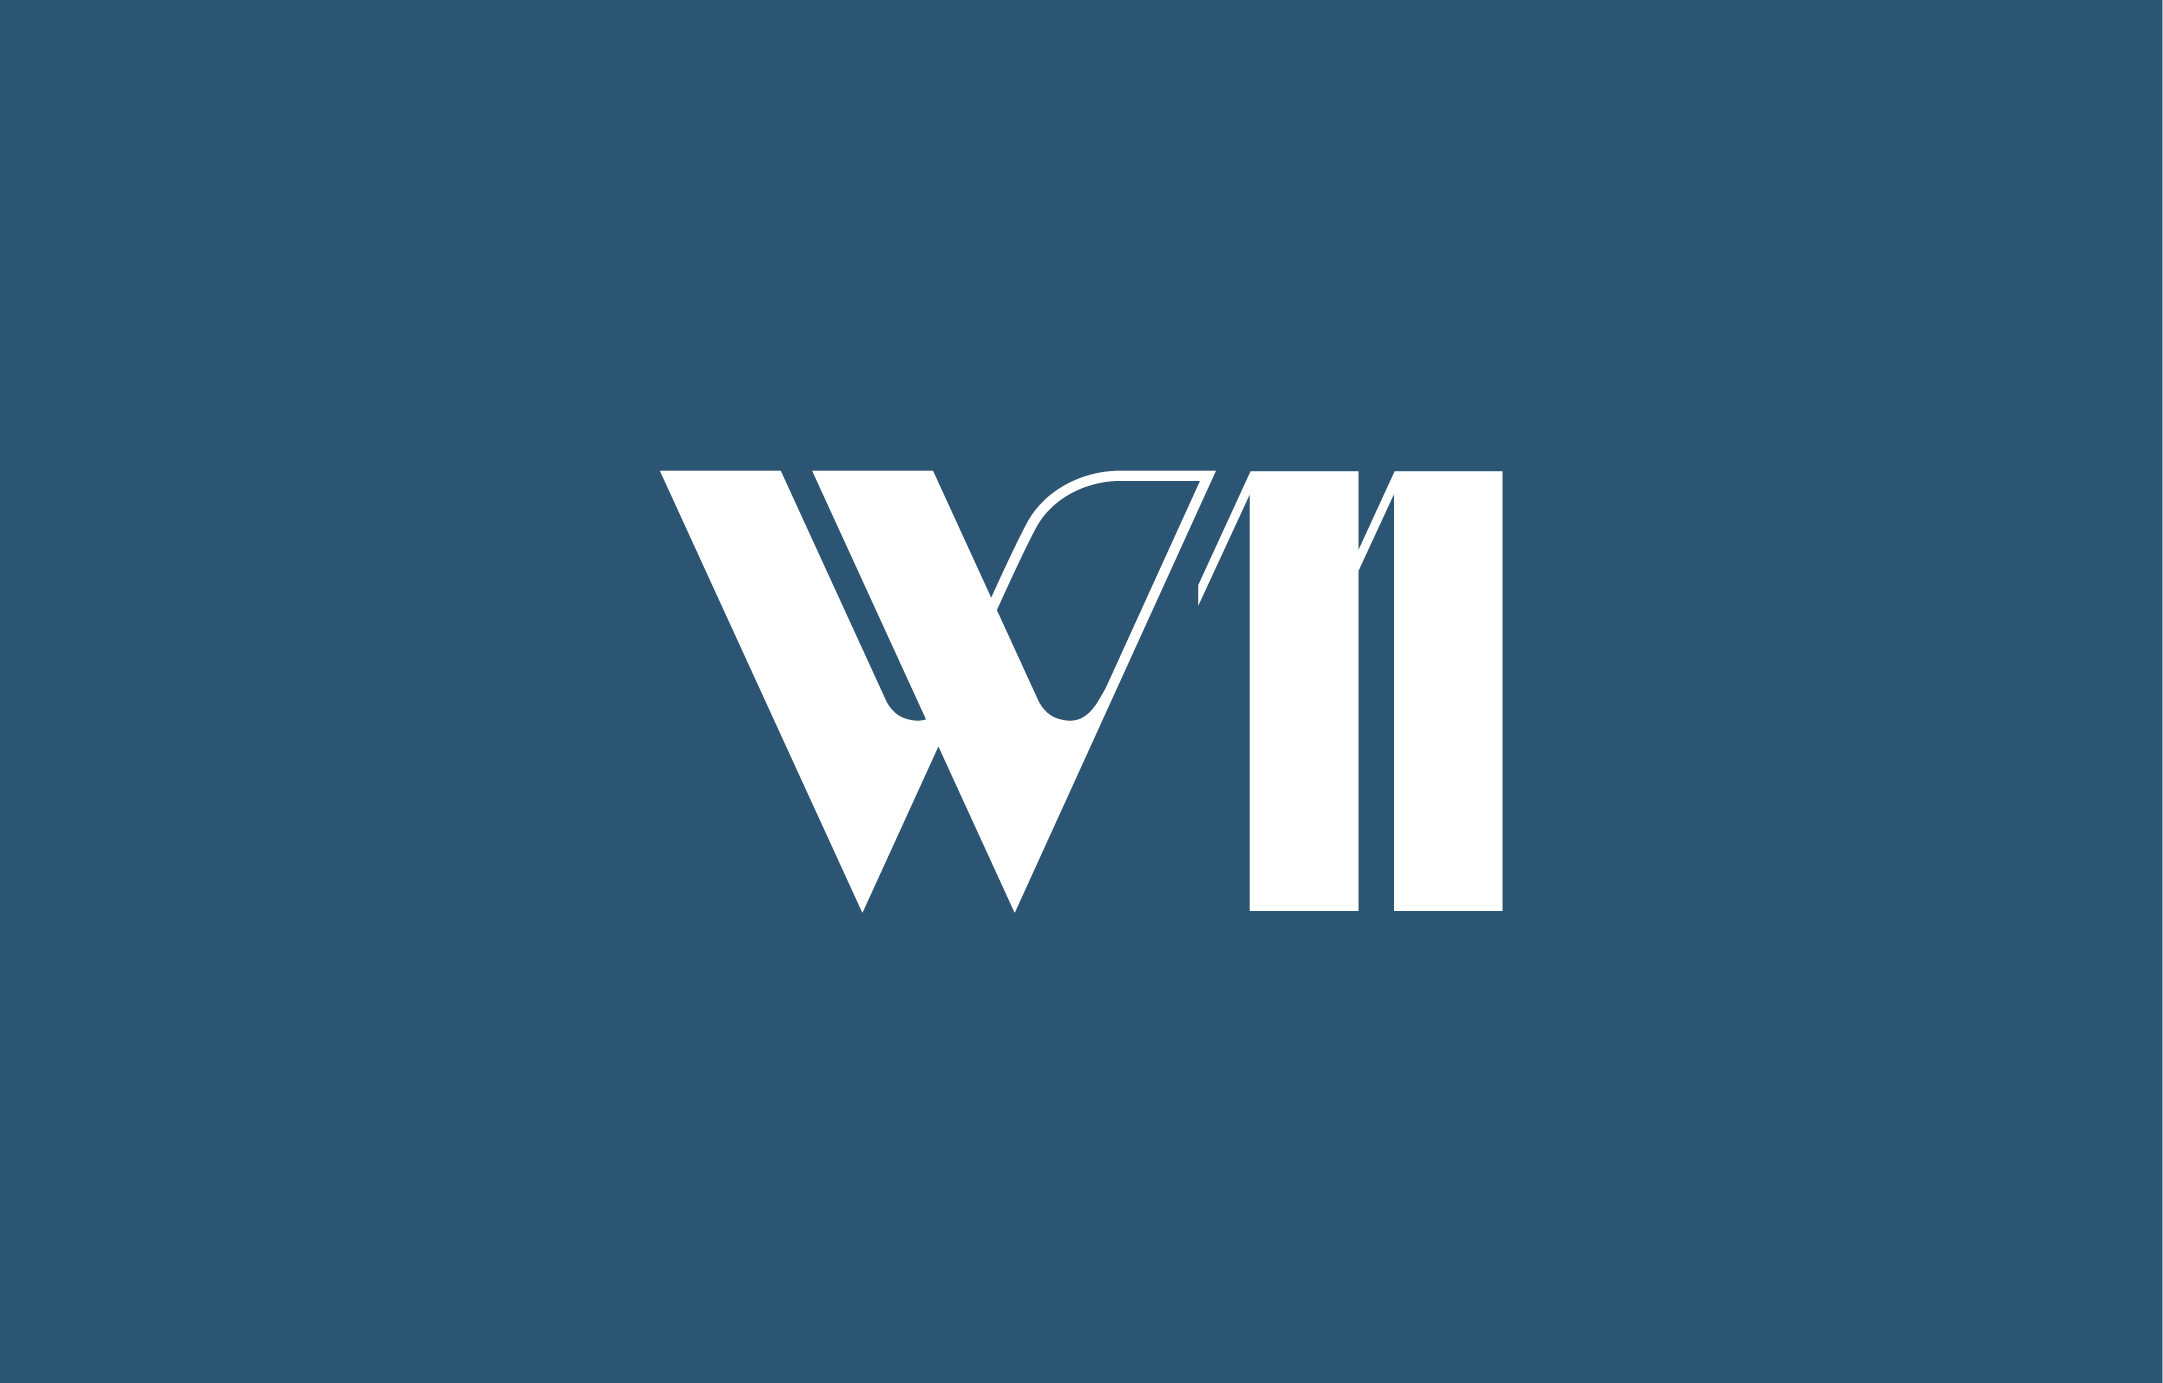 w11 construction logo